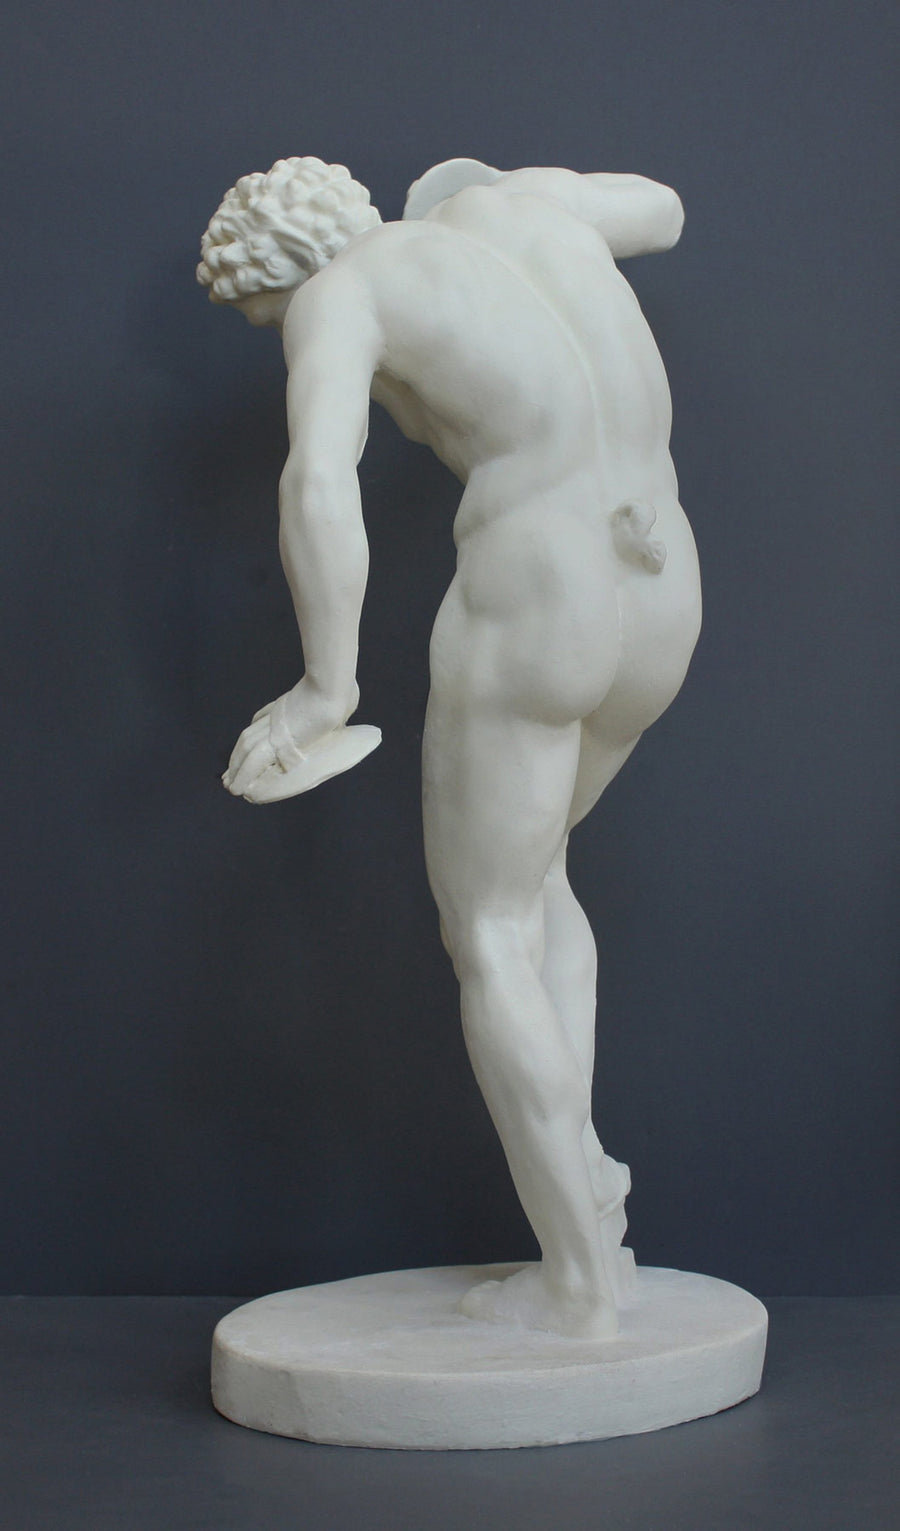 Photo with gray background of plaster cast sculpture of male faun or satyr from the back dancing with instruments attached to his hands